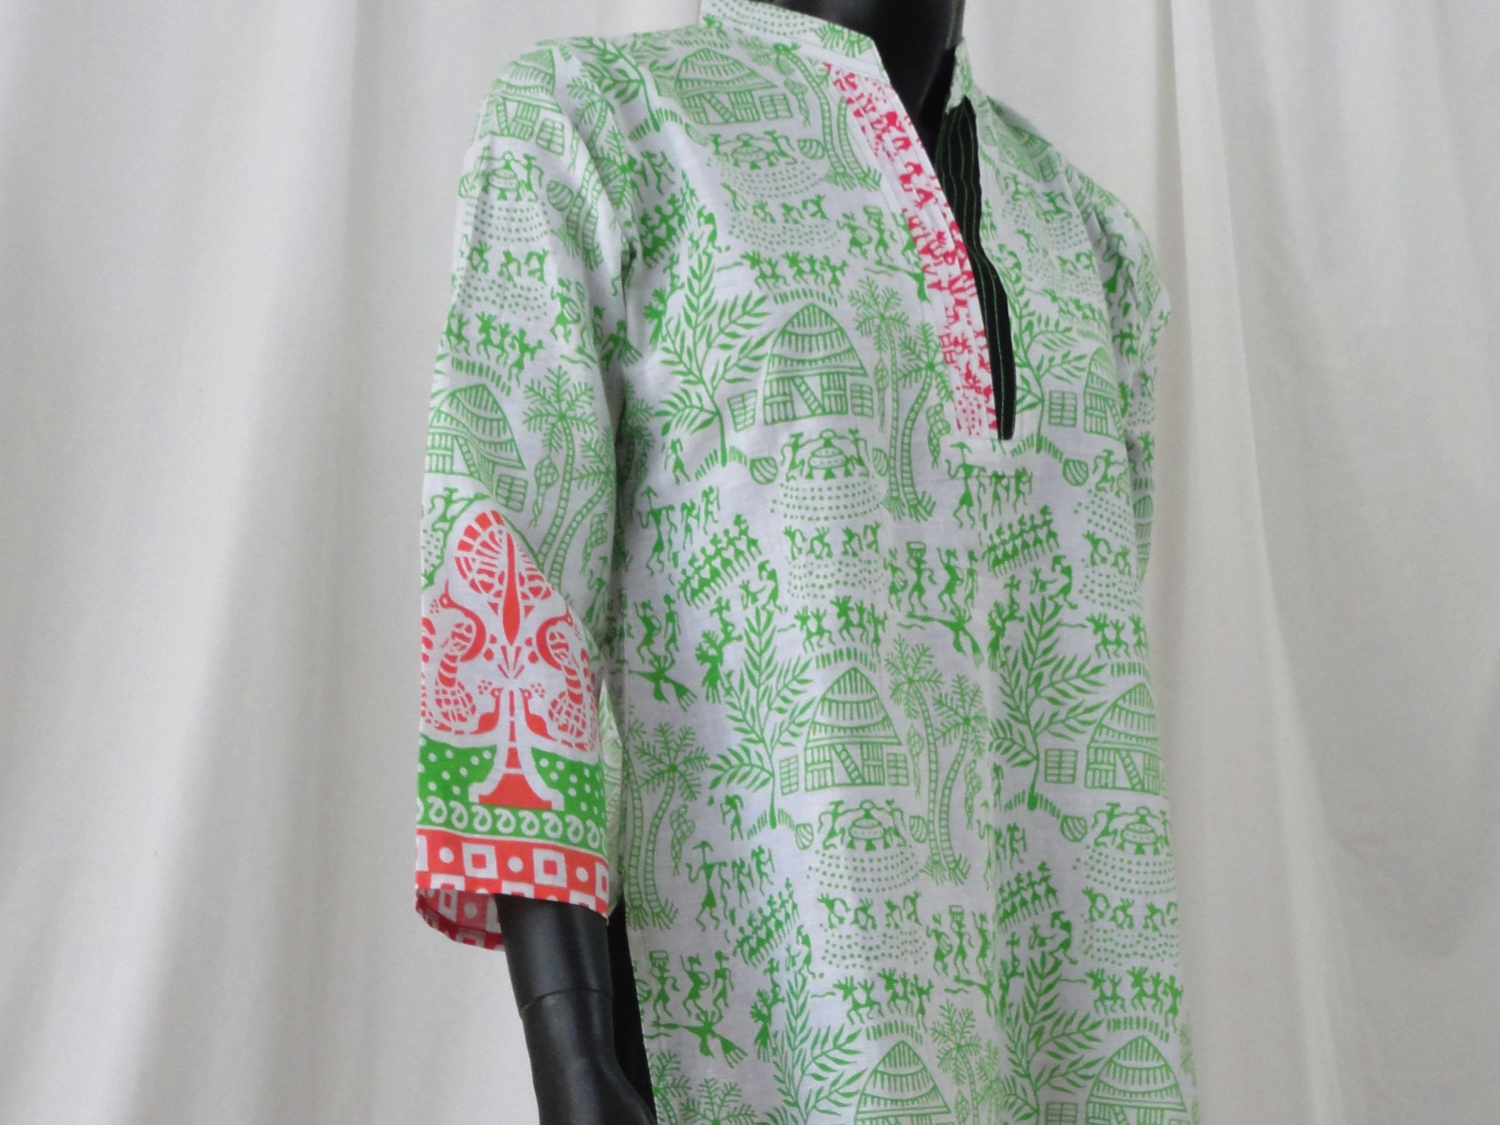 White yoga tunic or top soft cotton long dress top with cave art